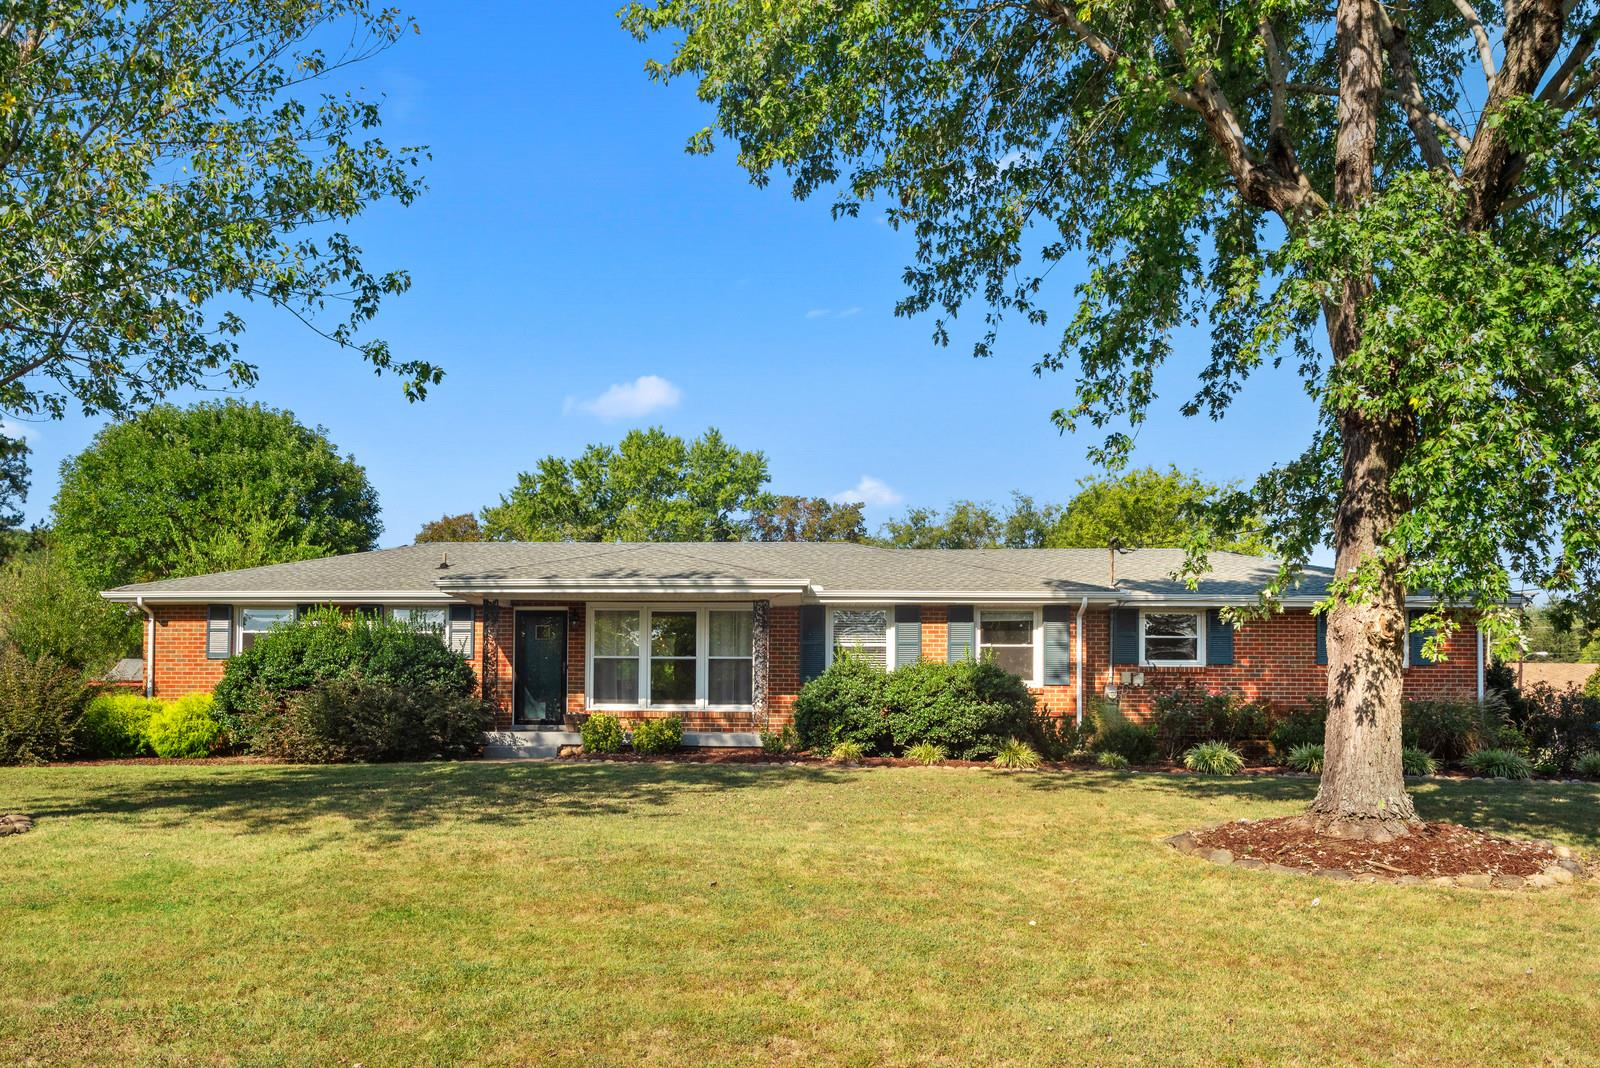 6137 Beals Ln, Nashville, TN 37218 - Nashville, TN real estate listing